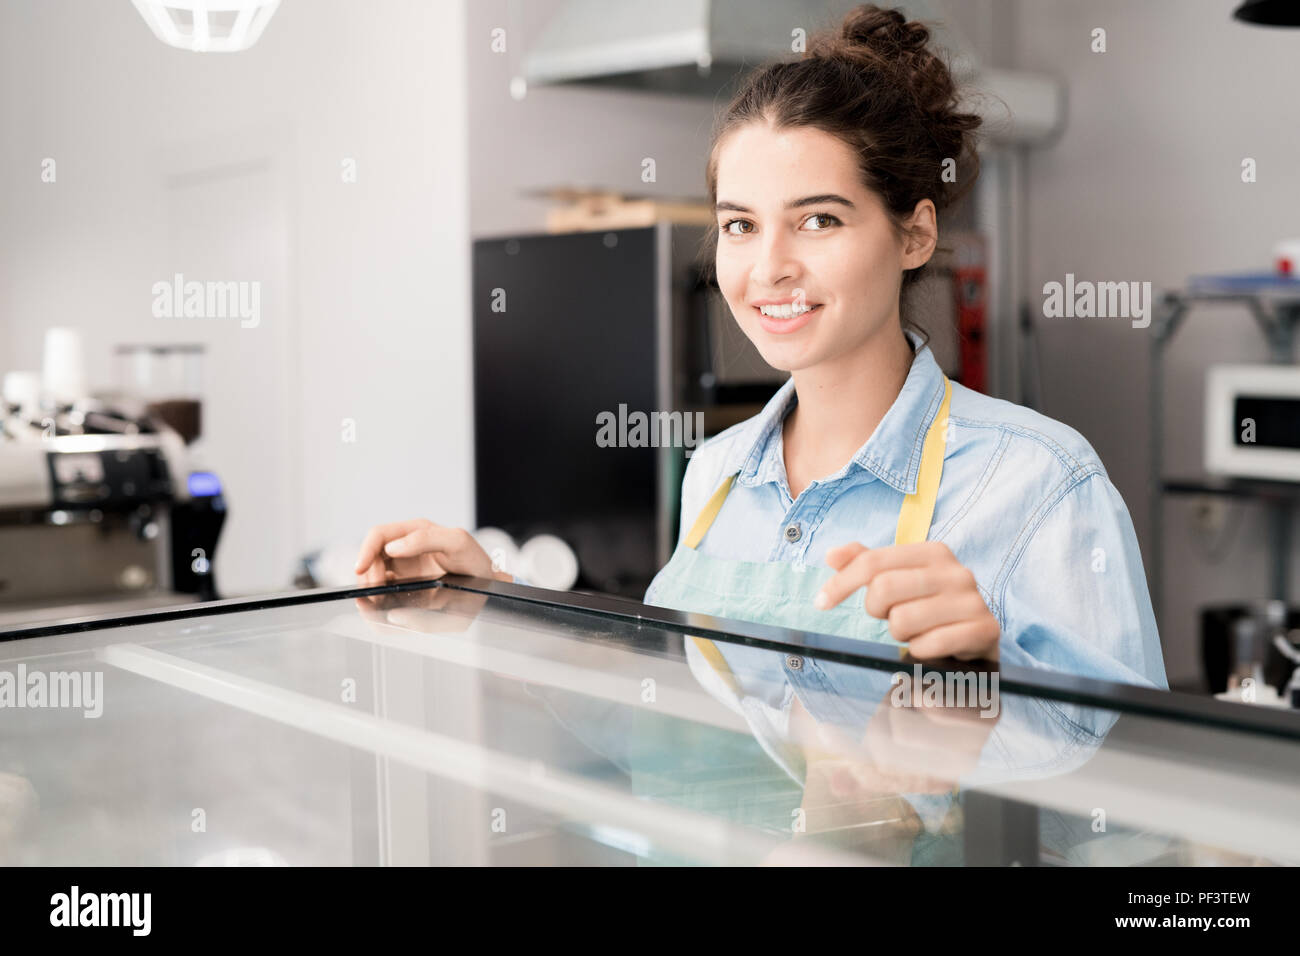 Smiling Woman Working in Cafe Photo Stock